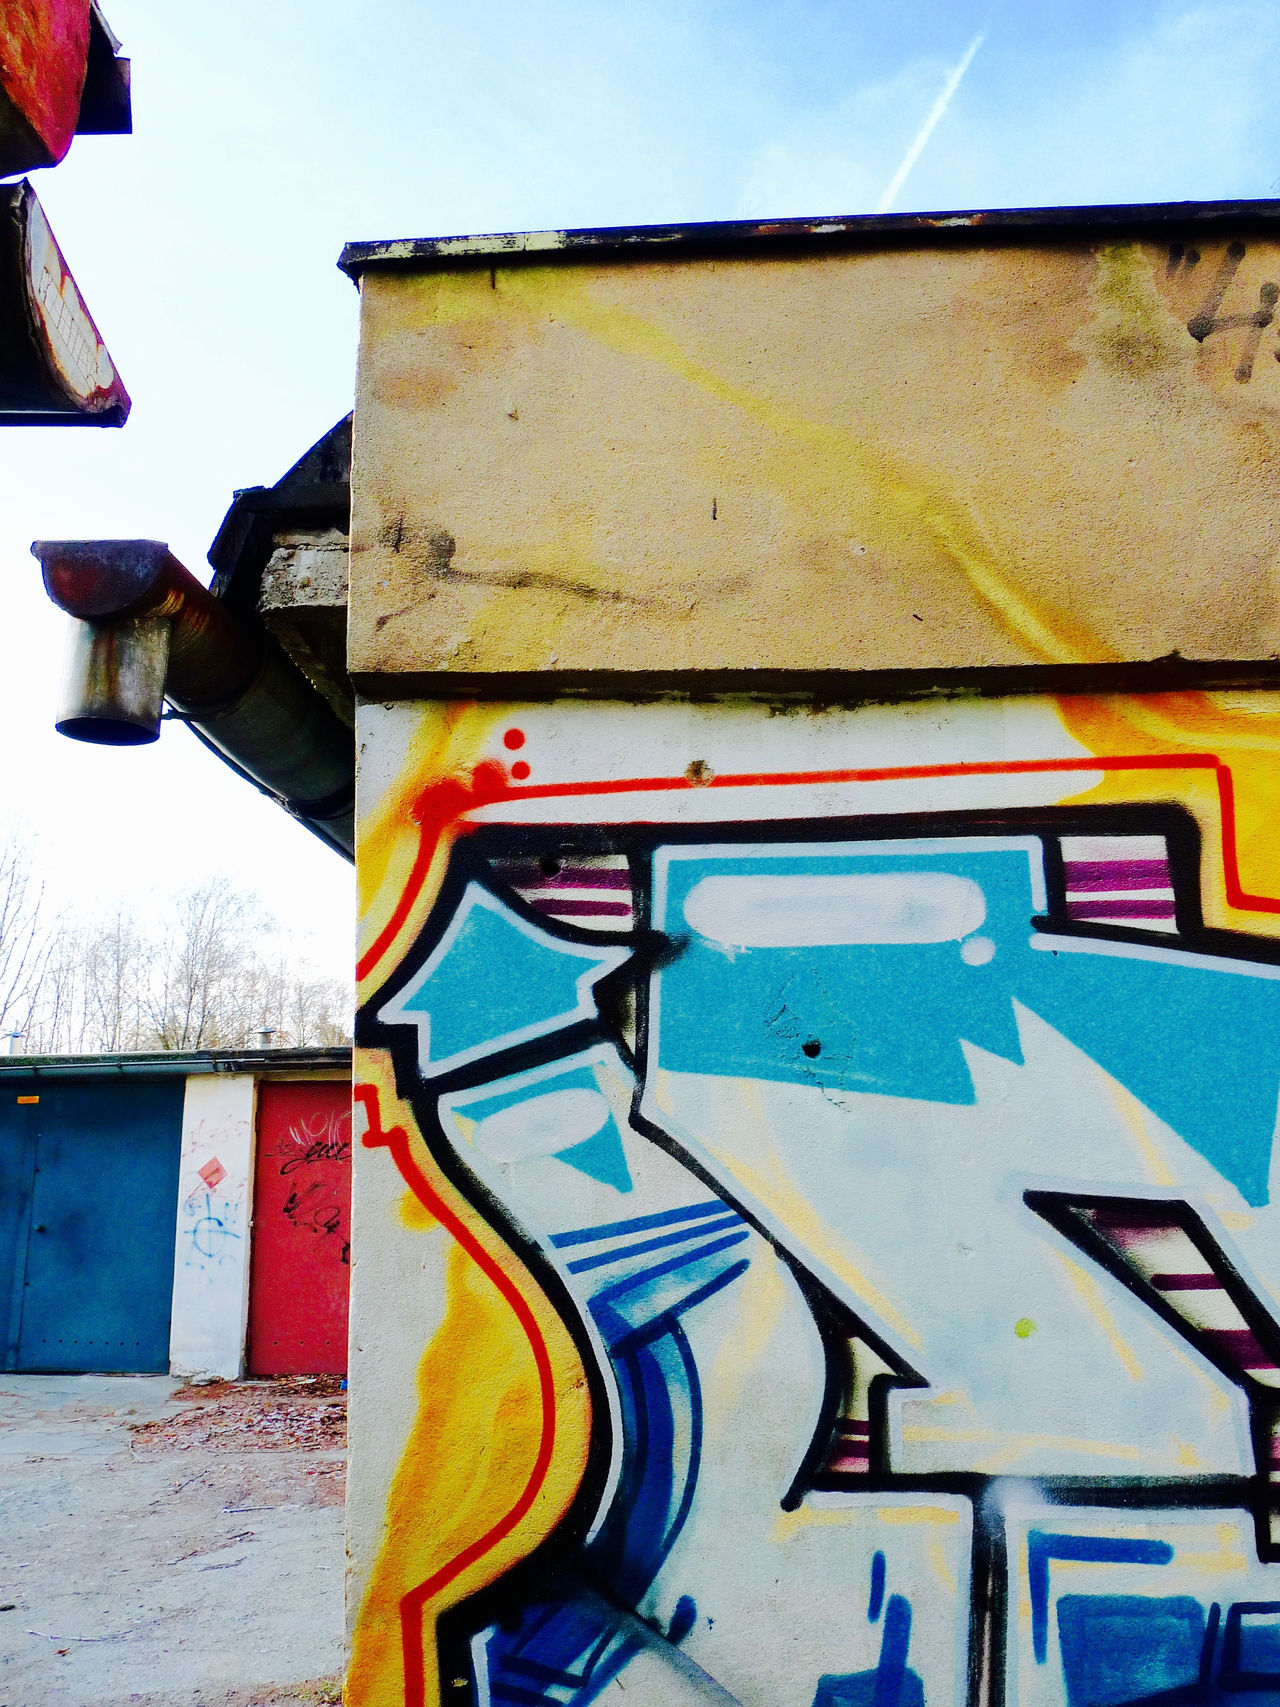 where lines meet Architecture Arrow Blue Building Exterior Built Structure Close-up Communication Corner Day Ecological Interaction Garage Graffiti Gutter Multi Colored No People Outdoors Paint Parallels Pipes Red Sreet Art Yellow